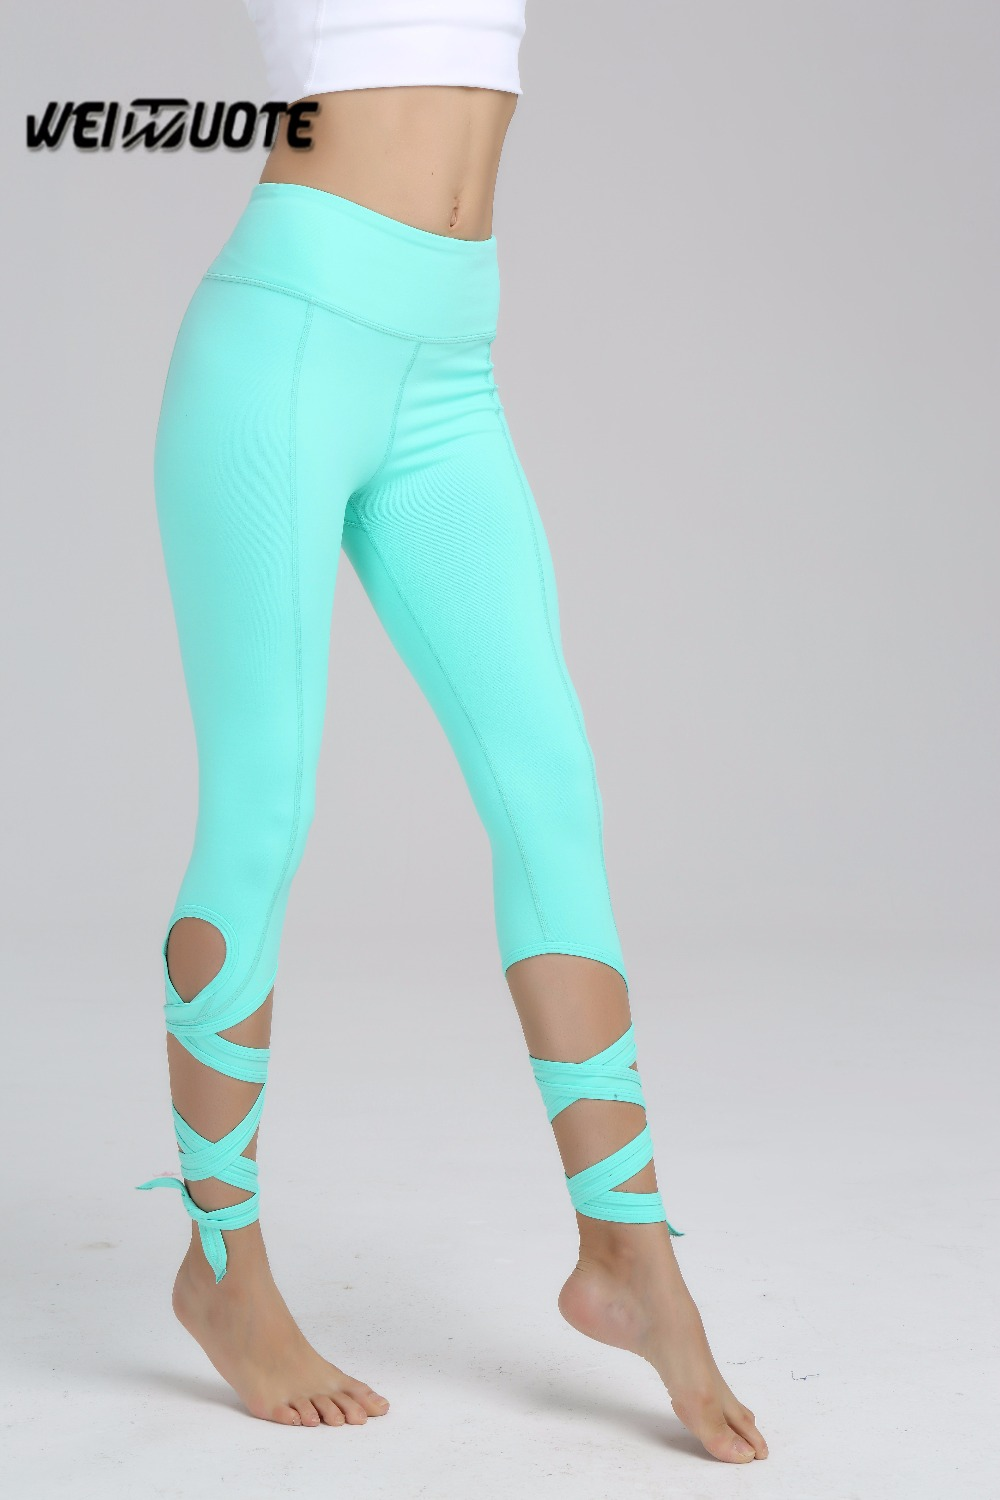 74a3bcb8ecd271 Tie yoga pants Women light blue wide waisyband sport leggings motion gym  Wrapped up Yoga PANT gym outfits